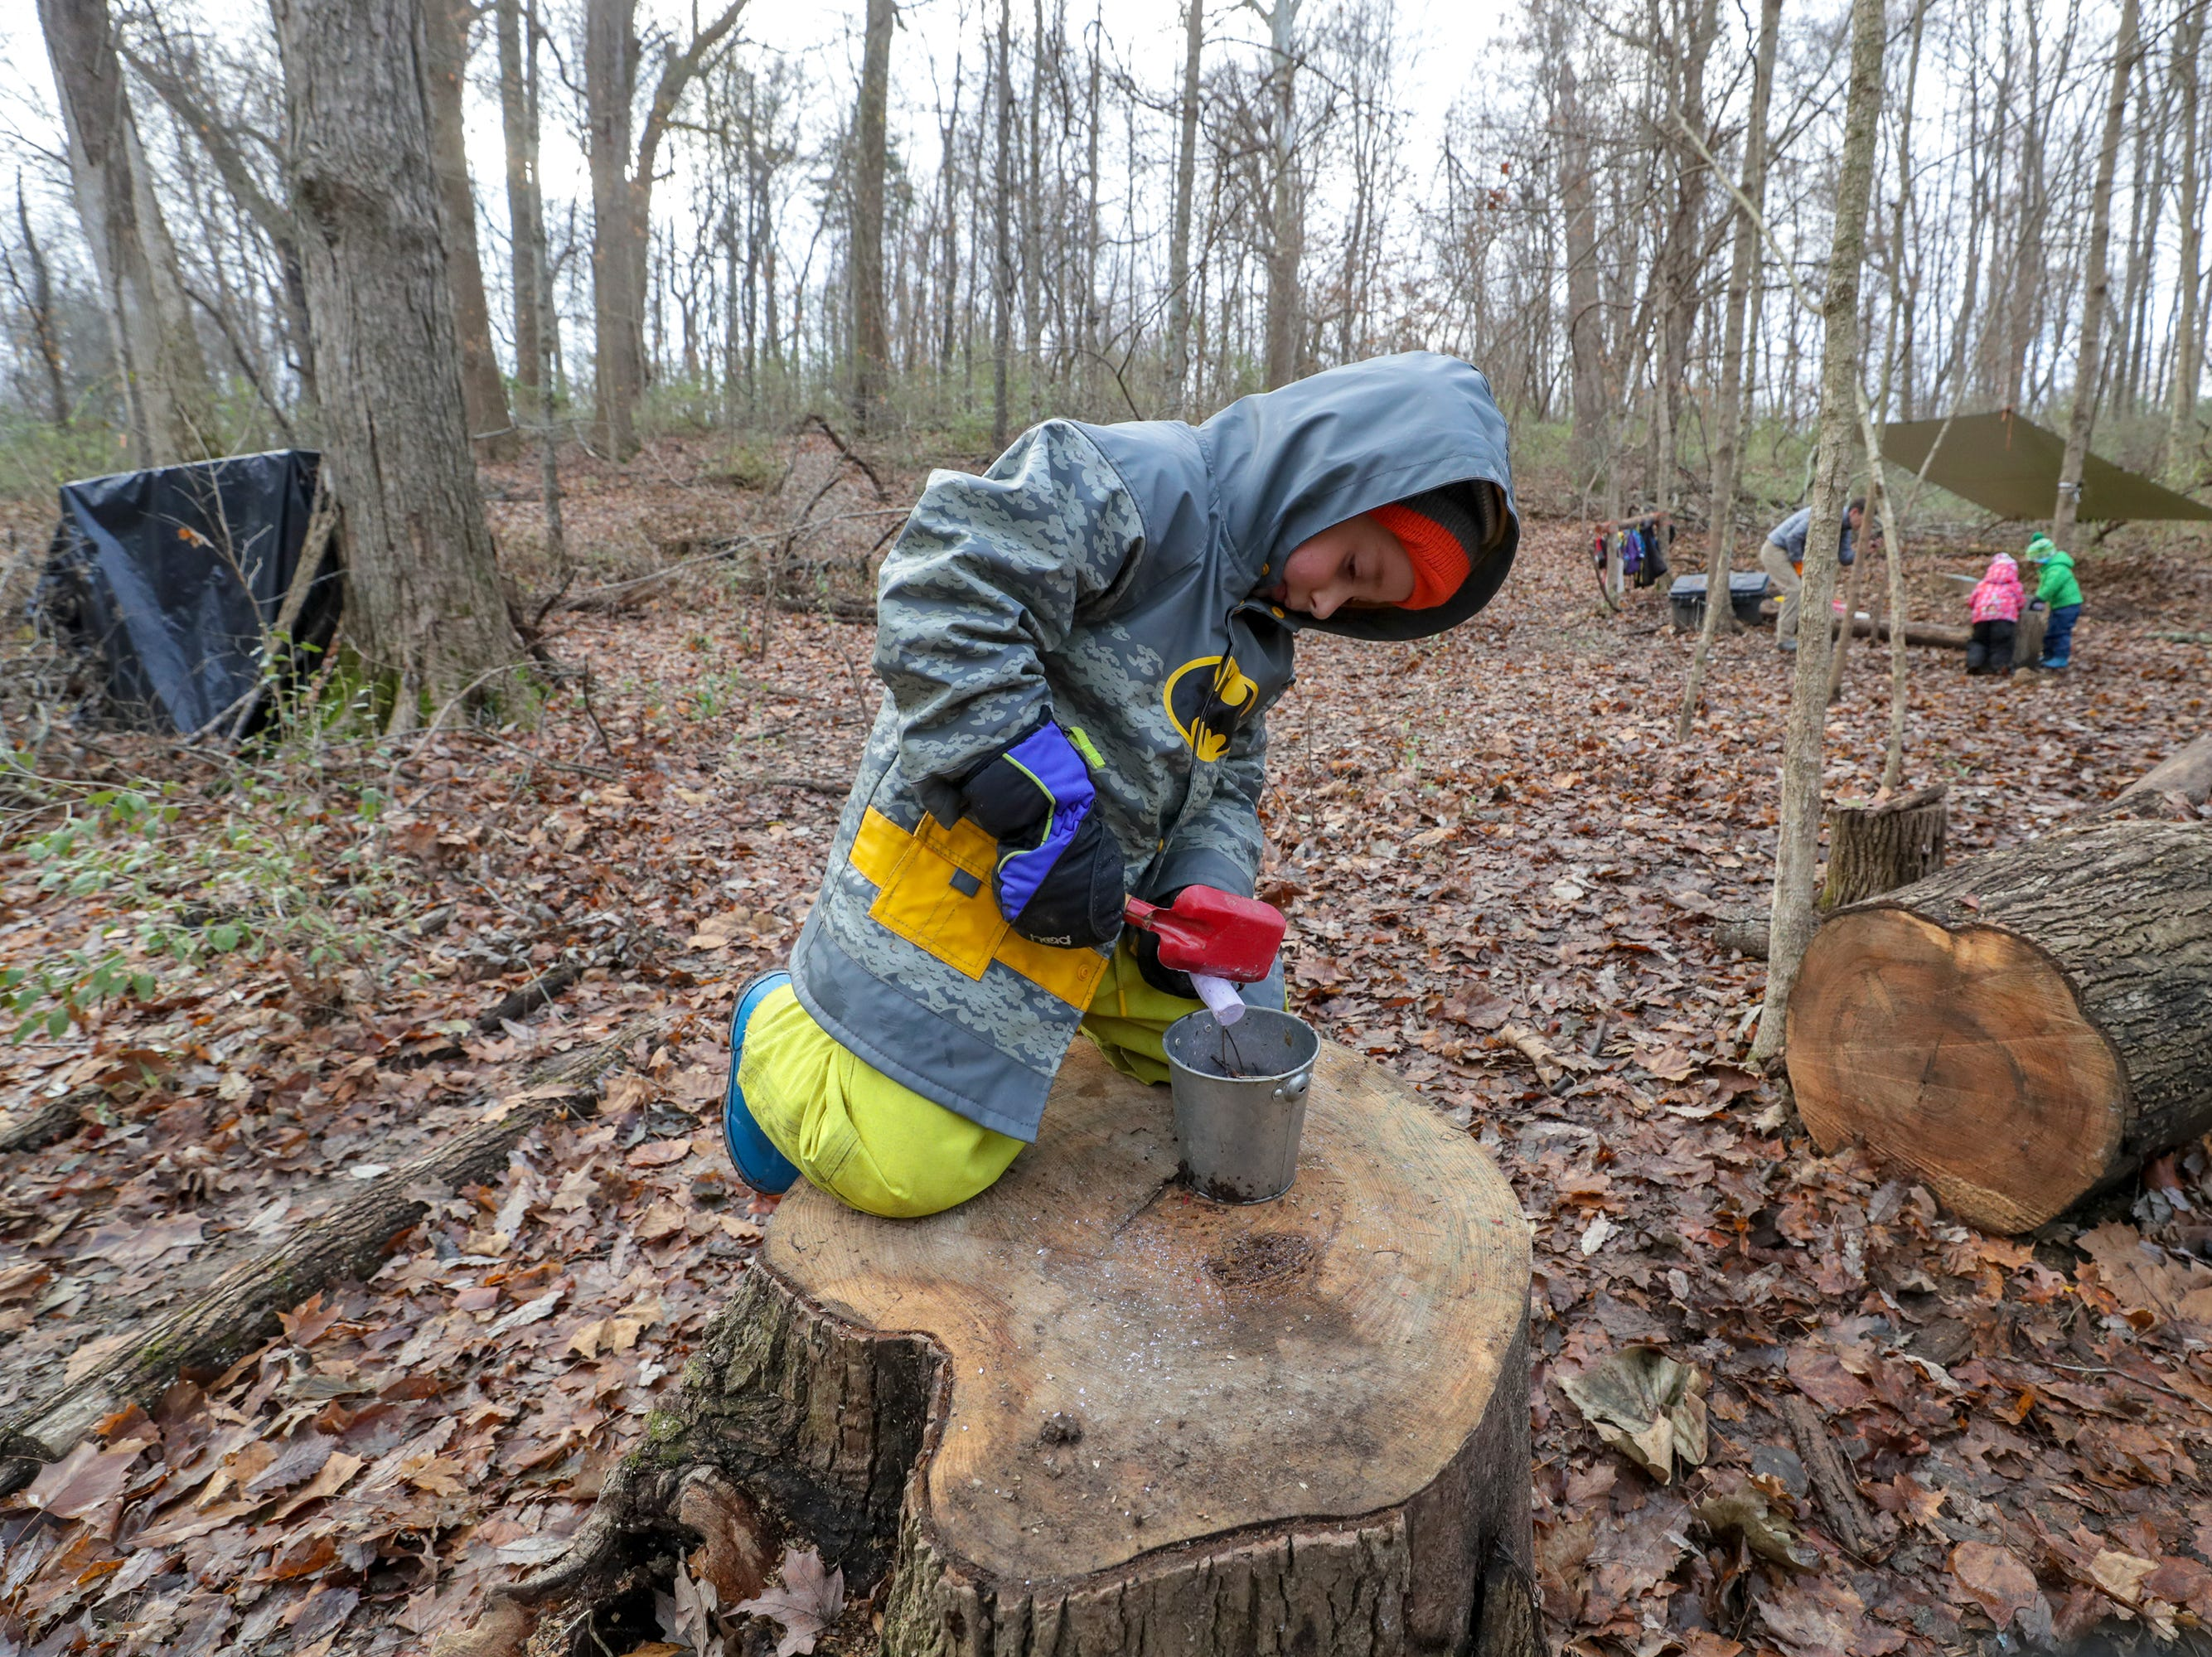 Quinn Mahoney works on a concoction consisting of leaves, twigs, stream water, mud and chalk at Thrive Forest School at Creasey Mahan Nature Preserve.November 19, 2018